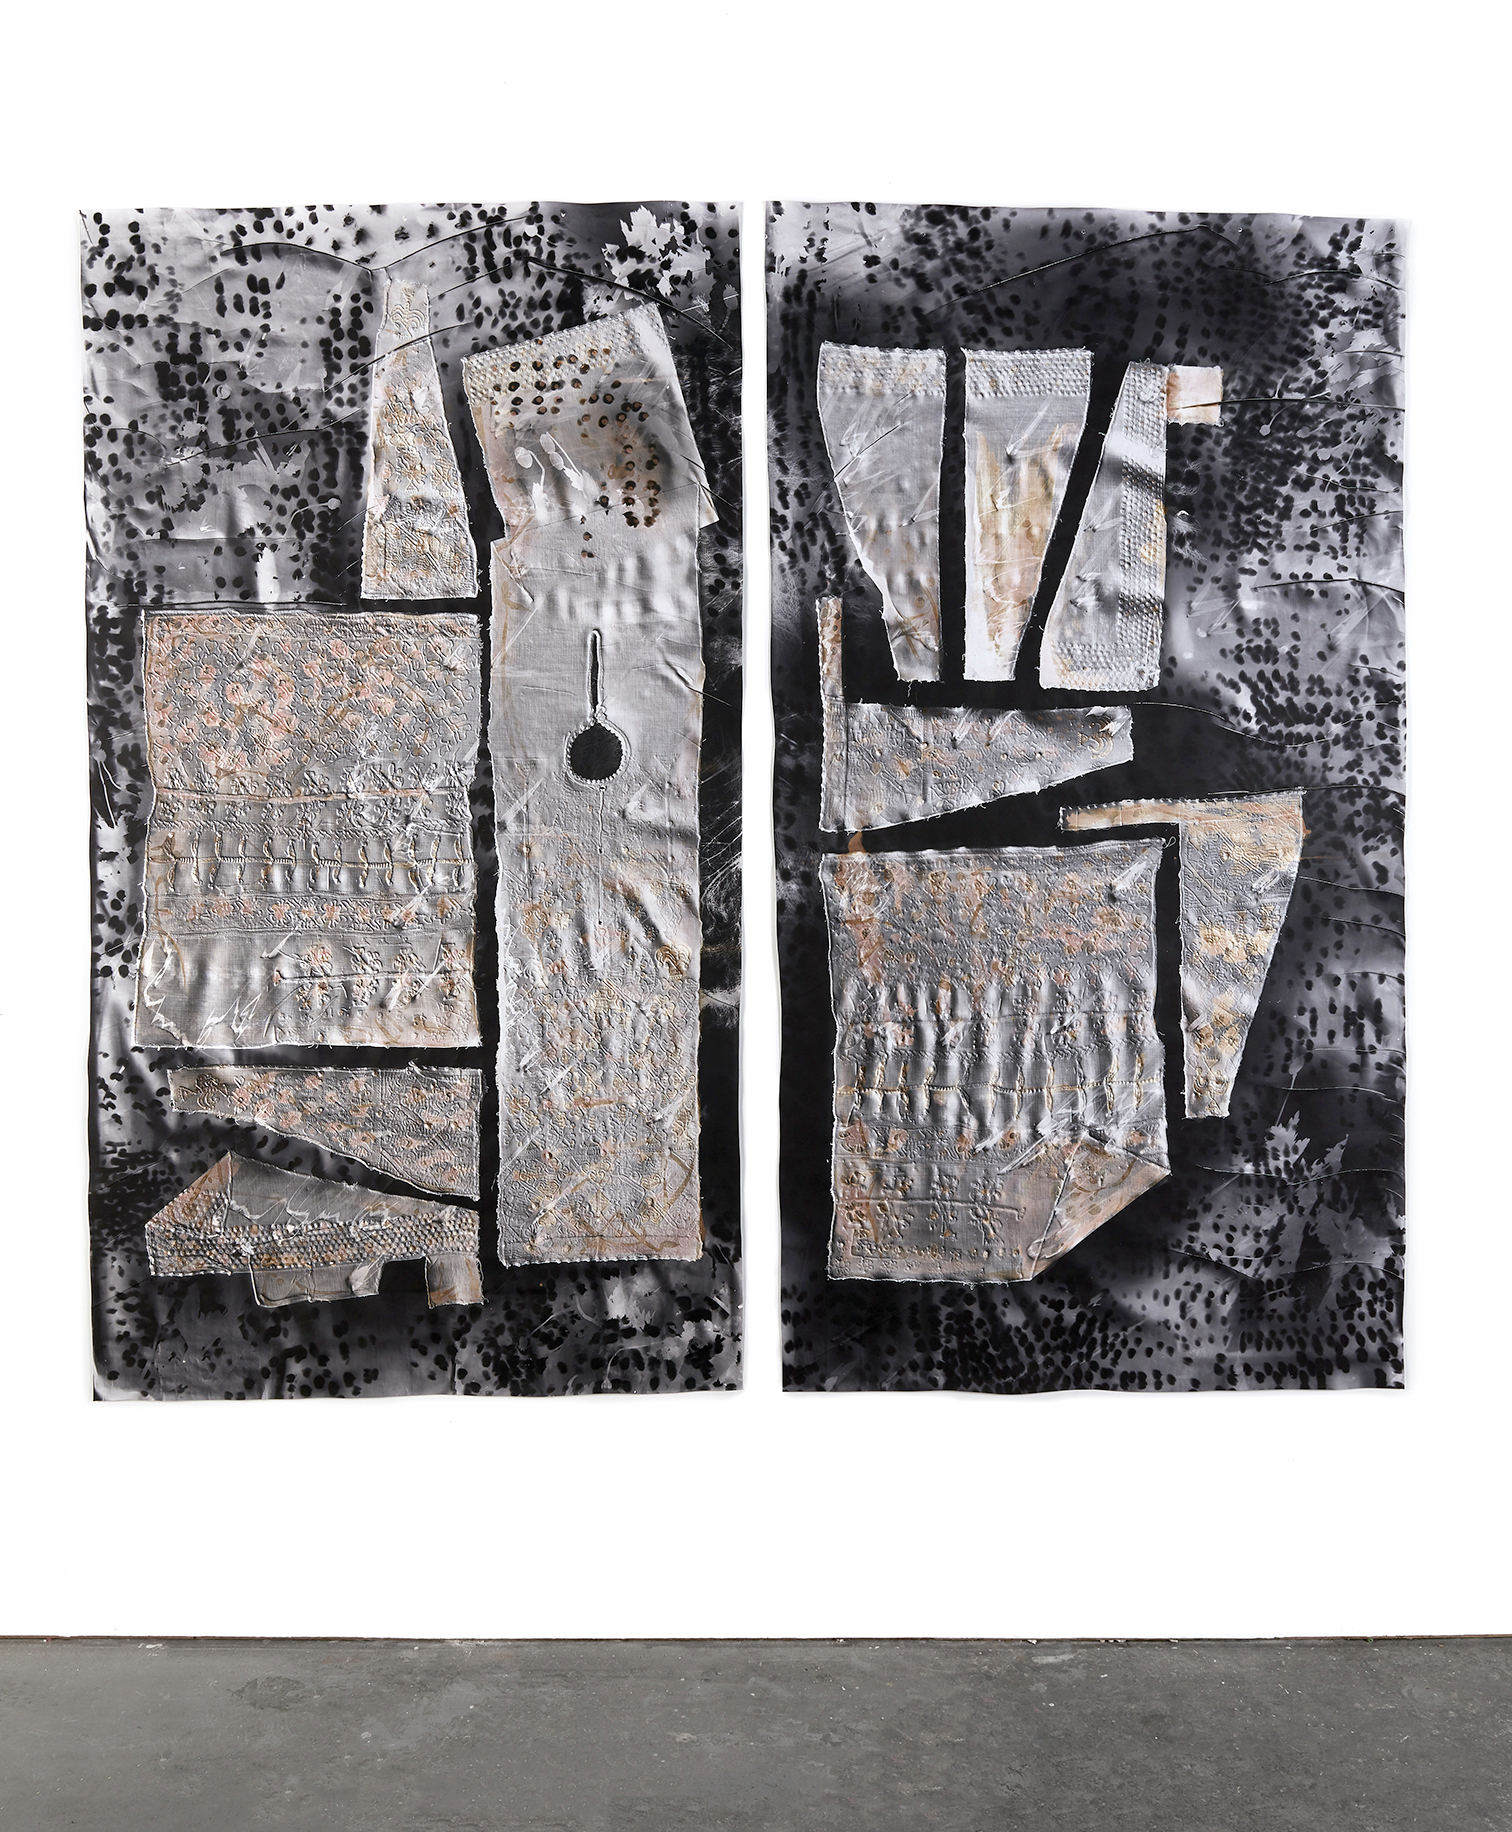 KLEA McKENNA  Sweeter than Salt (2) , 2019 Photographic Relief. Unique Photogram on gelatin silver fiber paper. Toned with Copper, Sepia and Selenium. Impression of every piece of a woman's traditional tunic from Swat Valley. Pakistan. 1950s. Overall 79 x 89 in, diptych